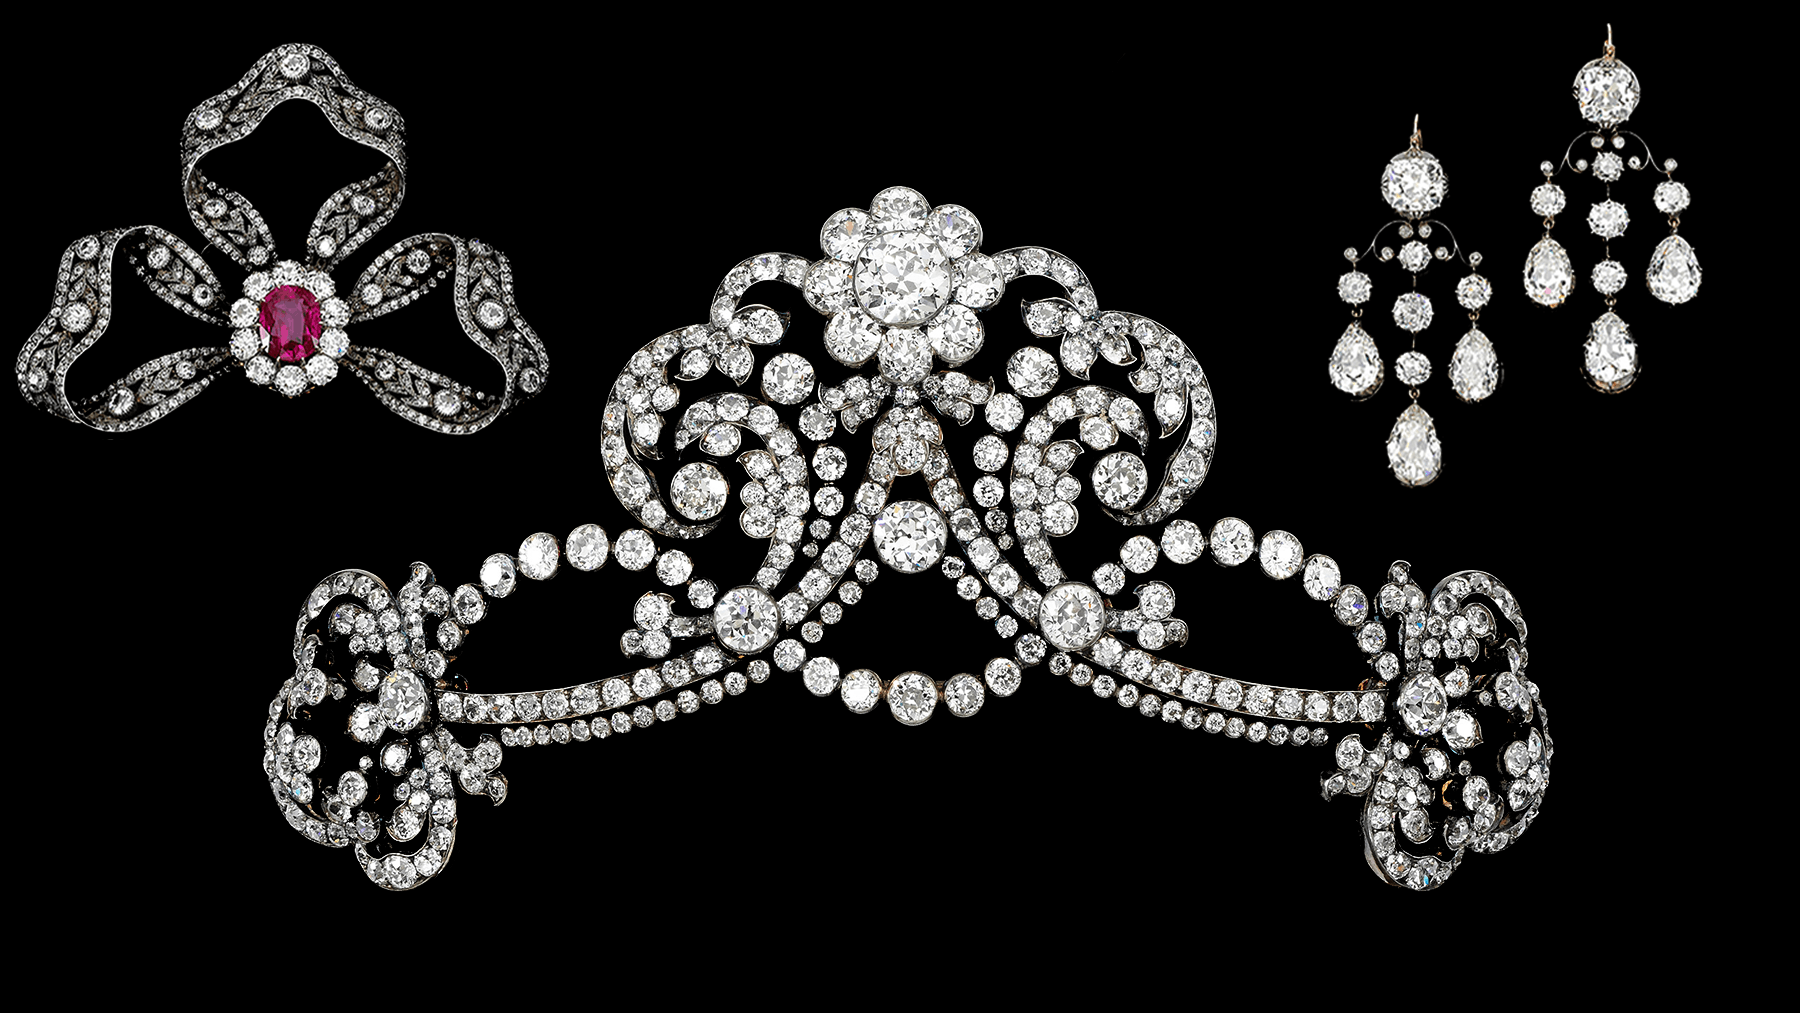 Jewels from the Bourbon Parma family collection | Source: Sotheby's